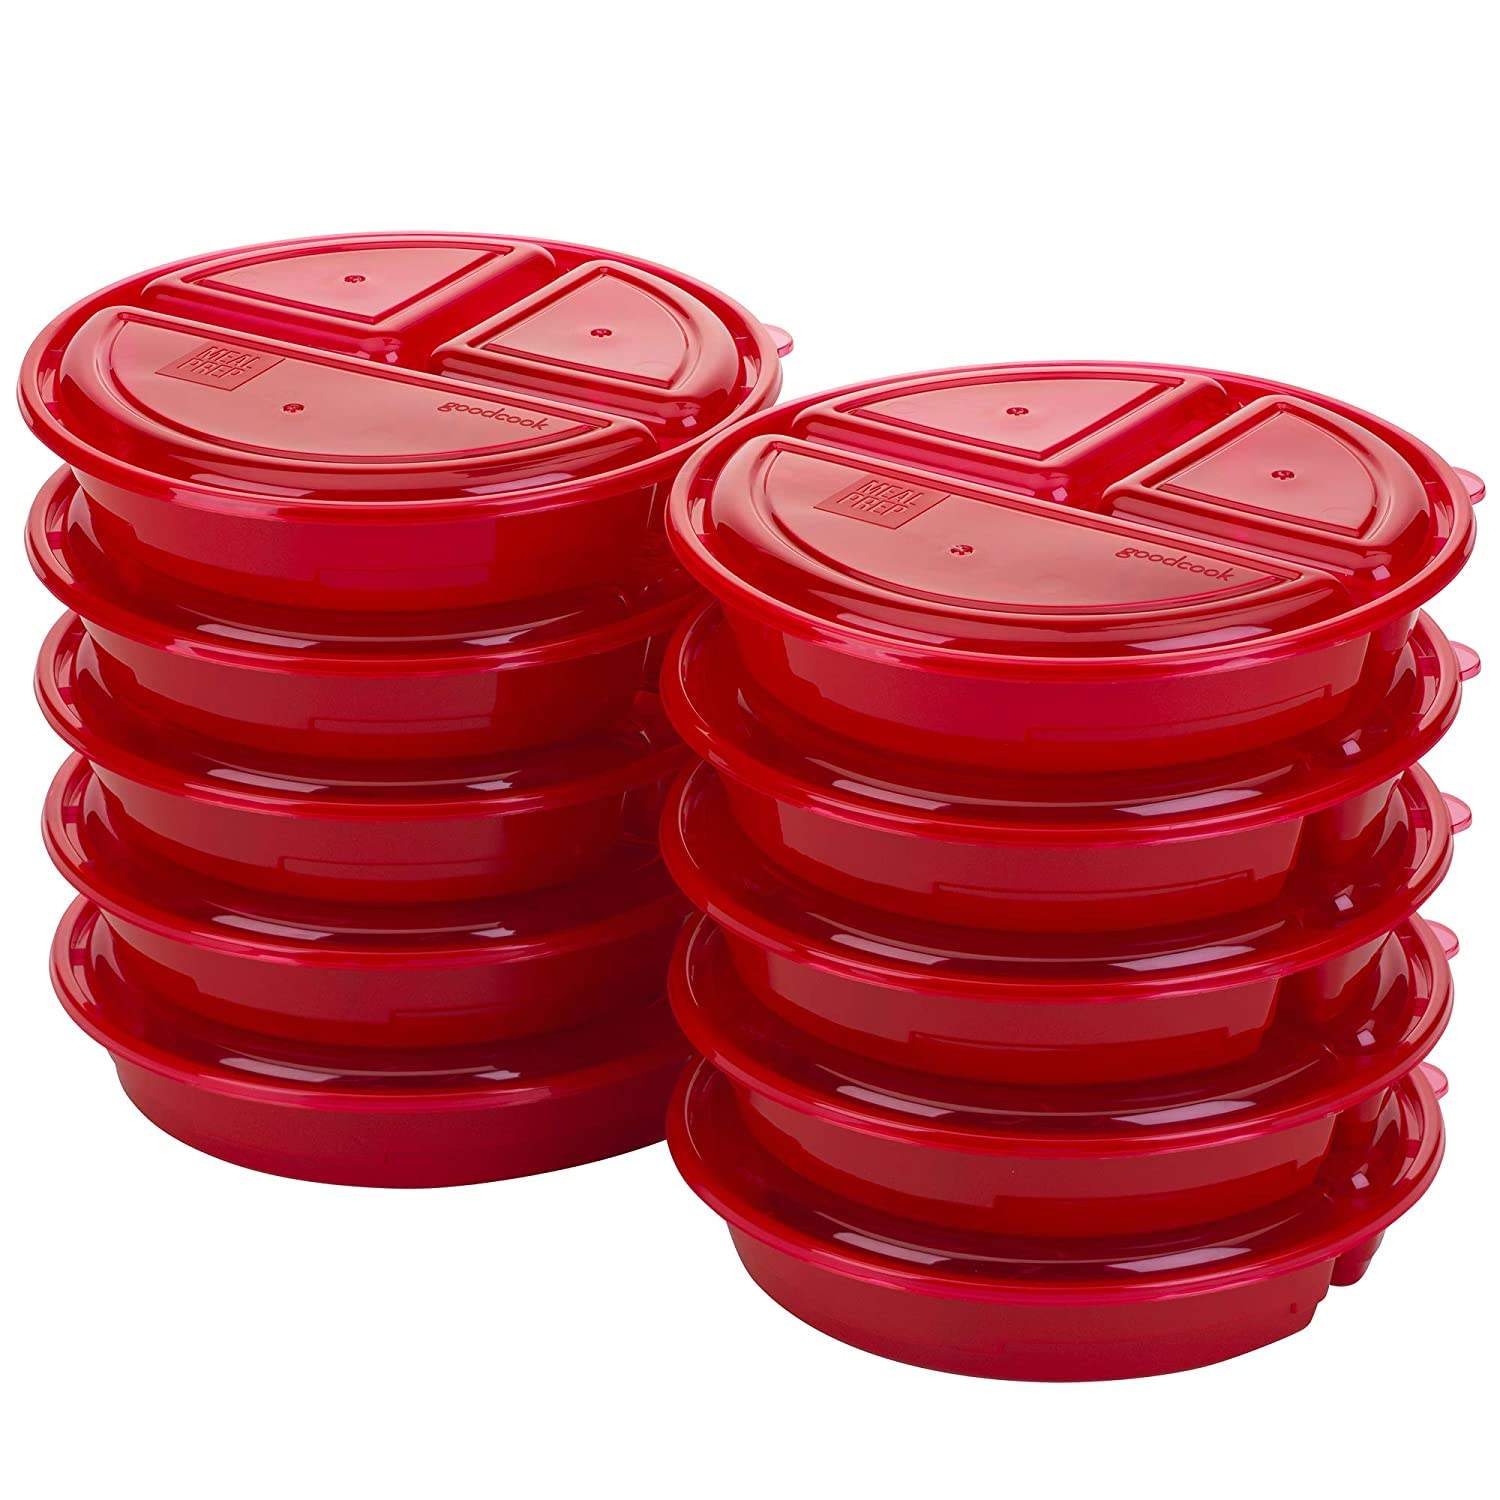 Good Cook 10787 Meal Prep on Fleek, 3 Compartments BPA Free,  Microwavable/Dishwasher/Freezer Safe, Red